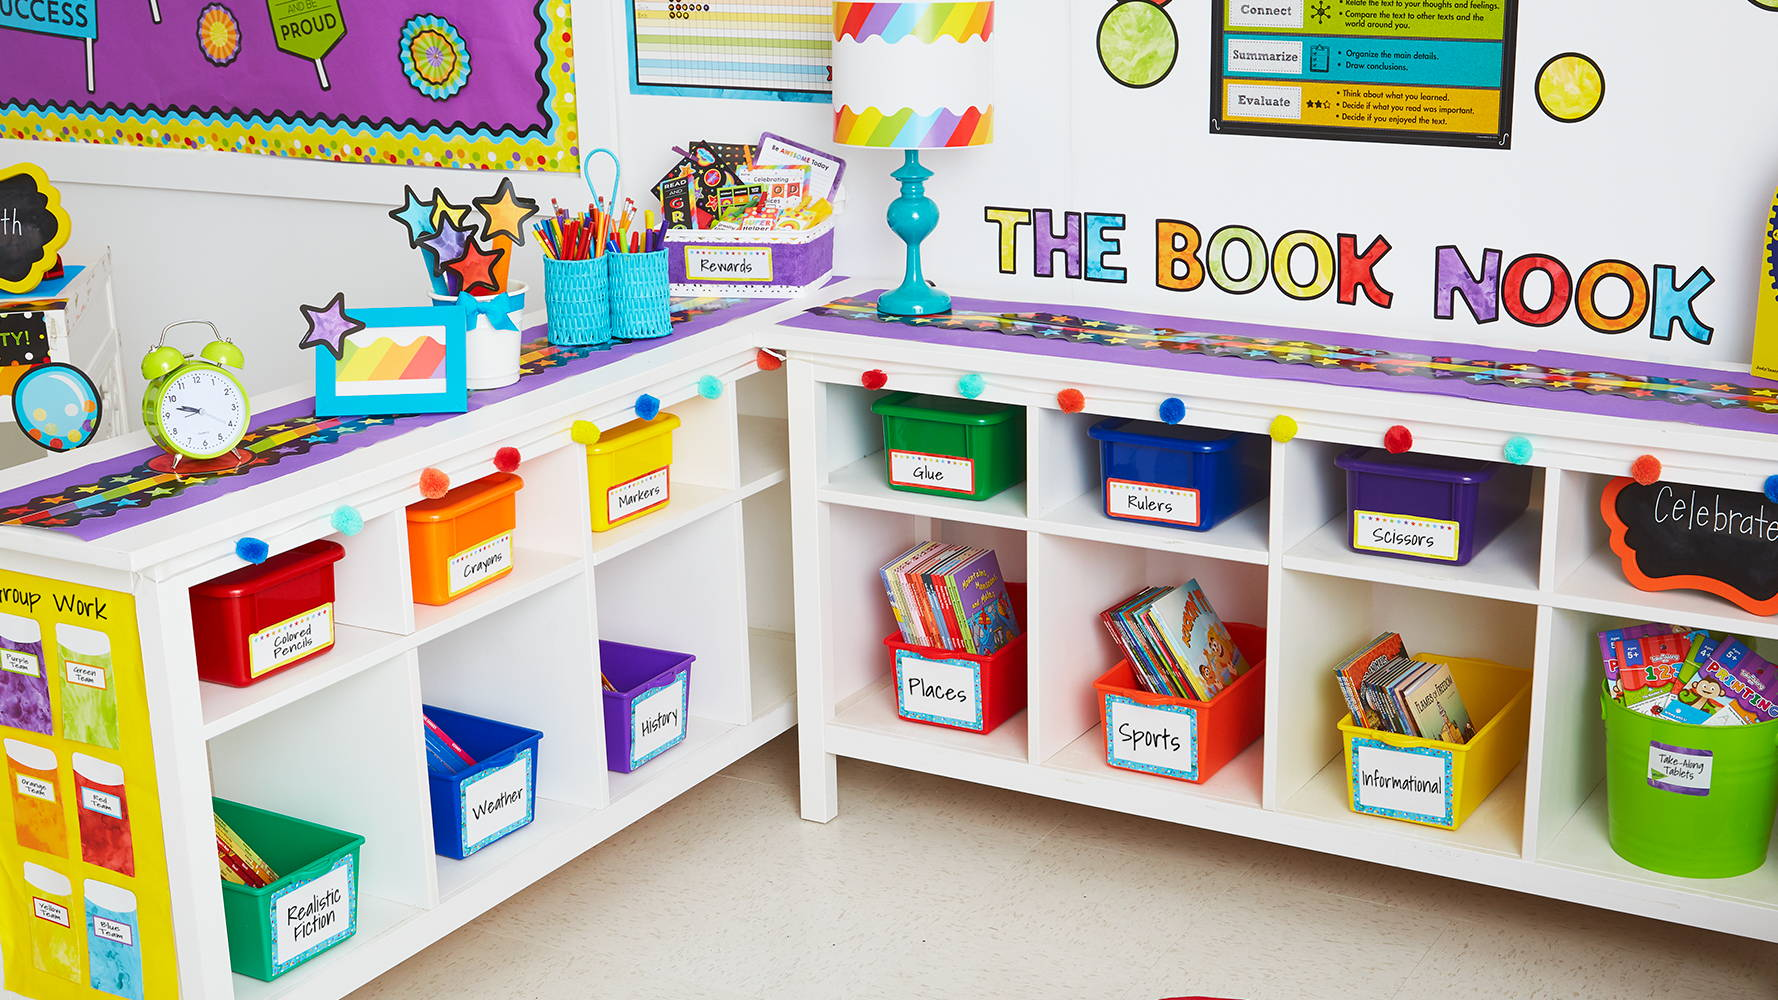 Celebrate Learning Book Nook